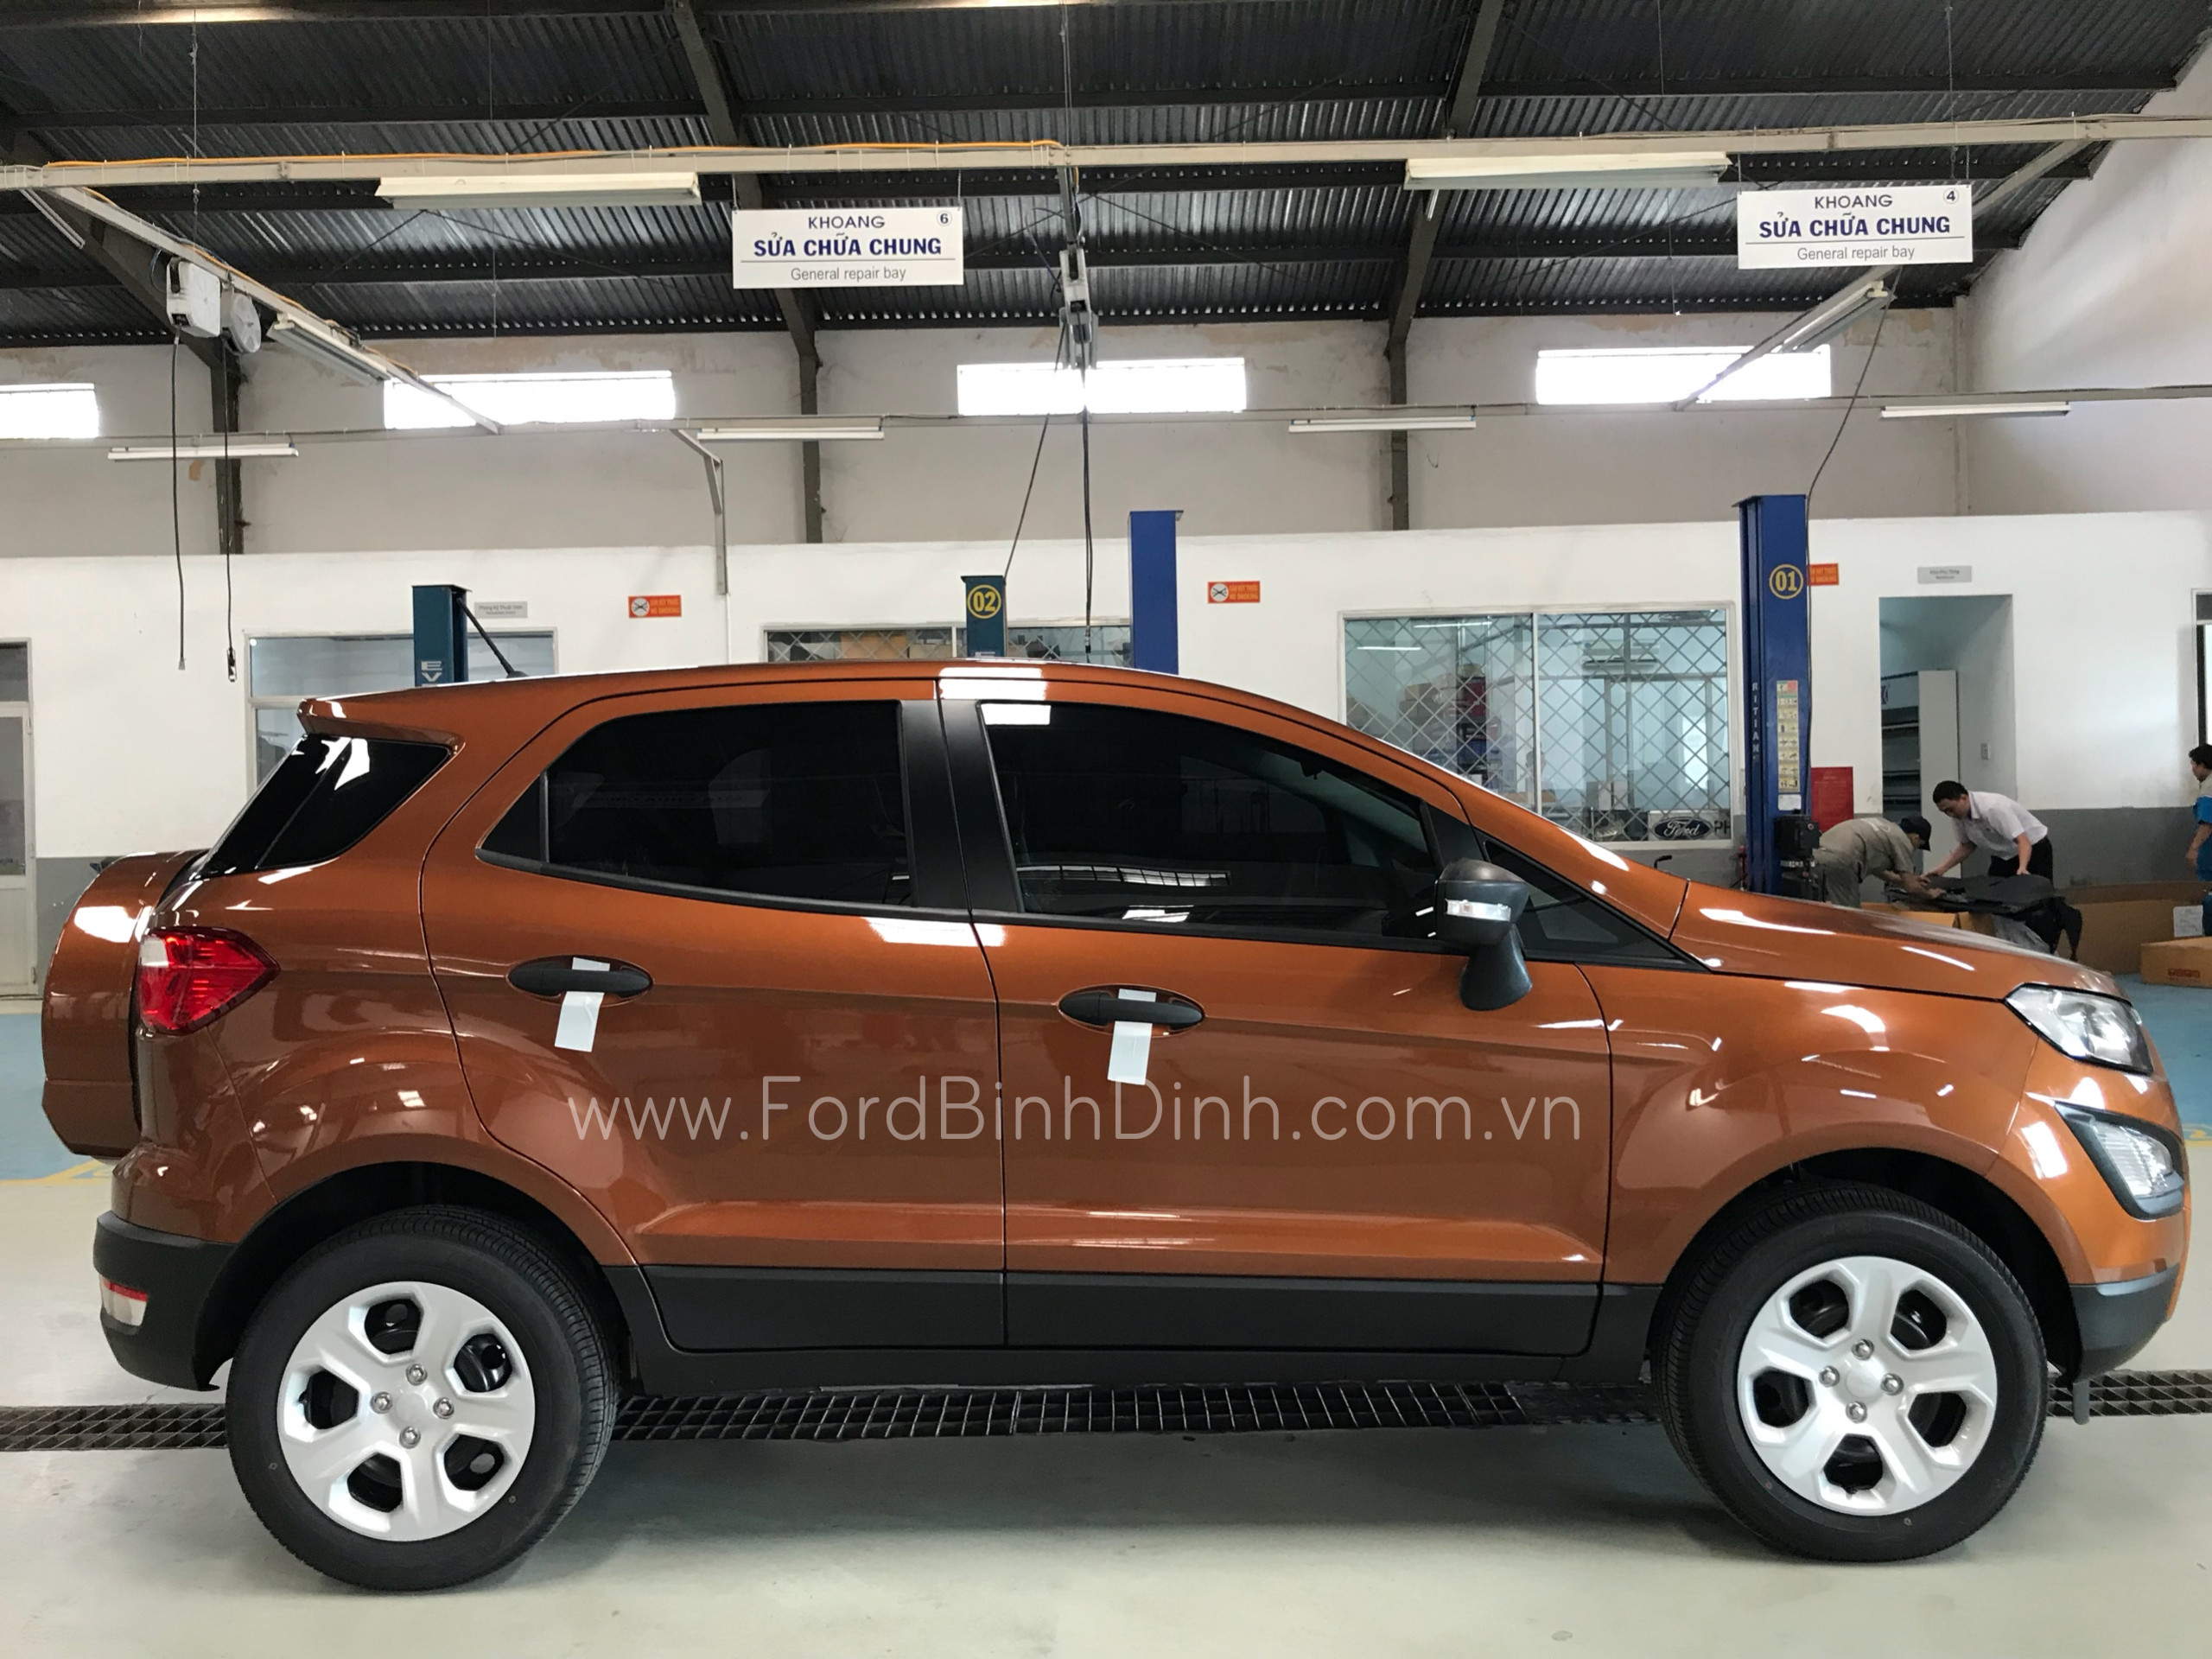 ecosport-1.5l-ambiente-at-ford-binh-dinh-com-vn-3